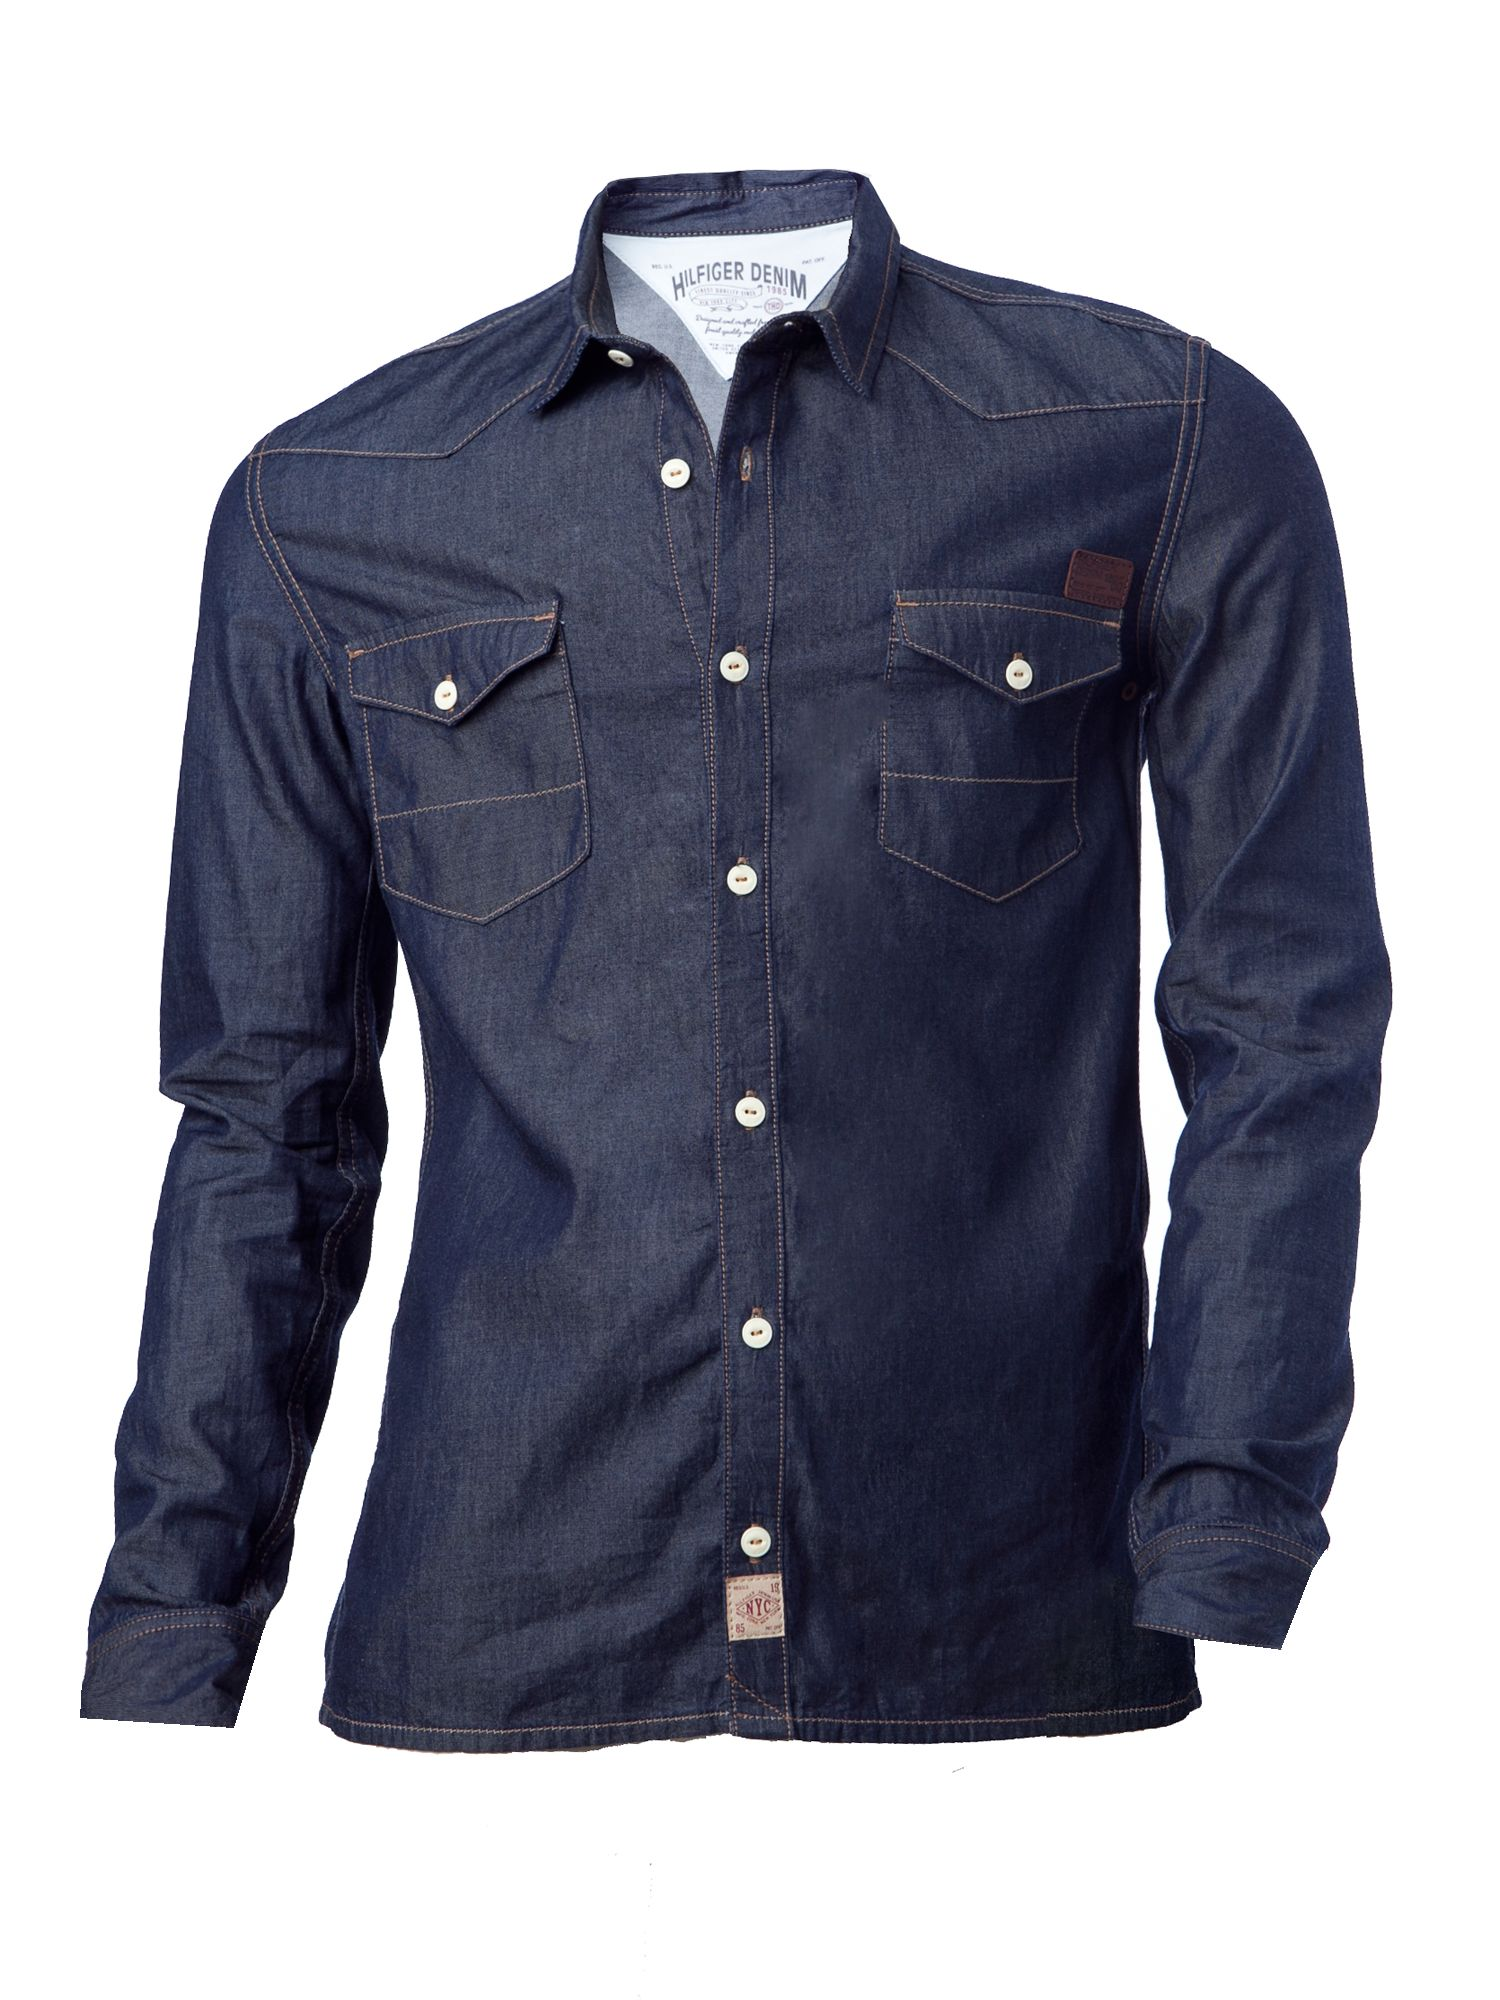 tommy hilfiger gratton long sleeved denim shirt in blue. Black Bedroom Furniture Sets. Home Design Ideas